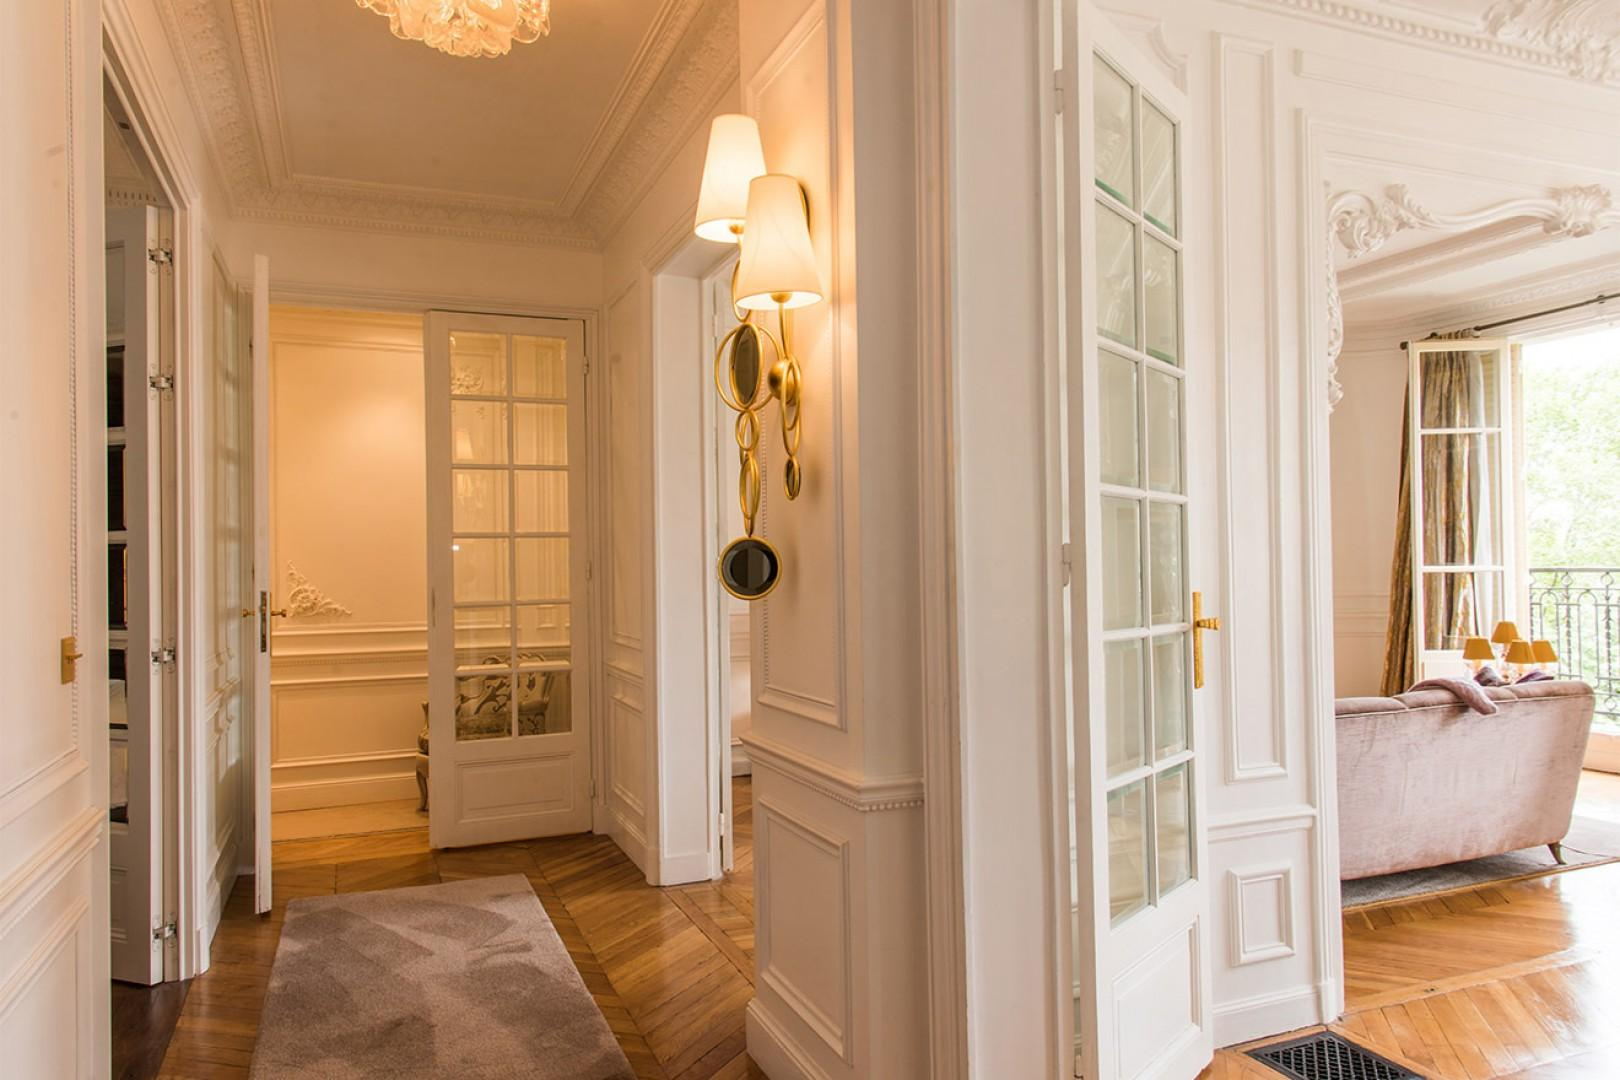 Exquisite French touches continue in the entrance hallway.